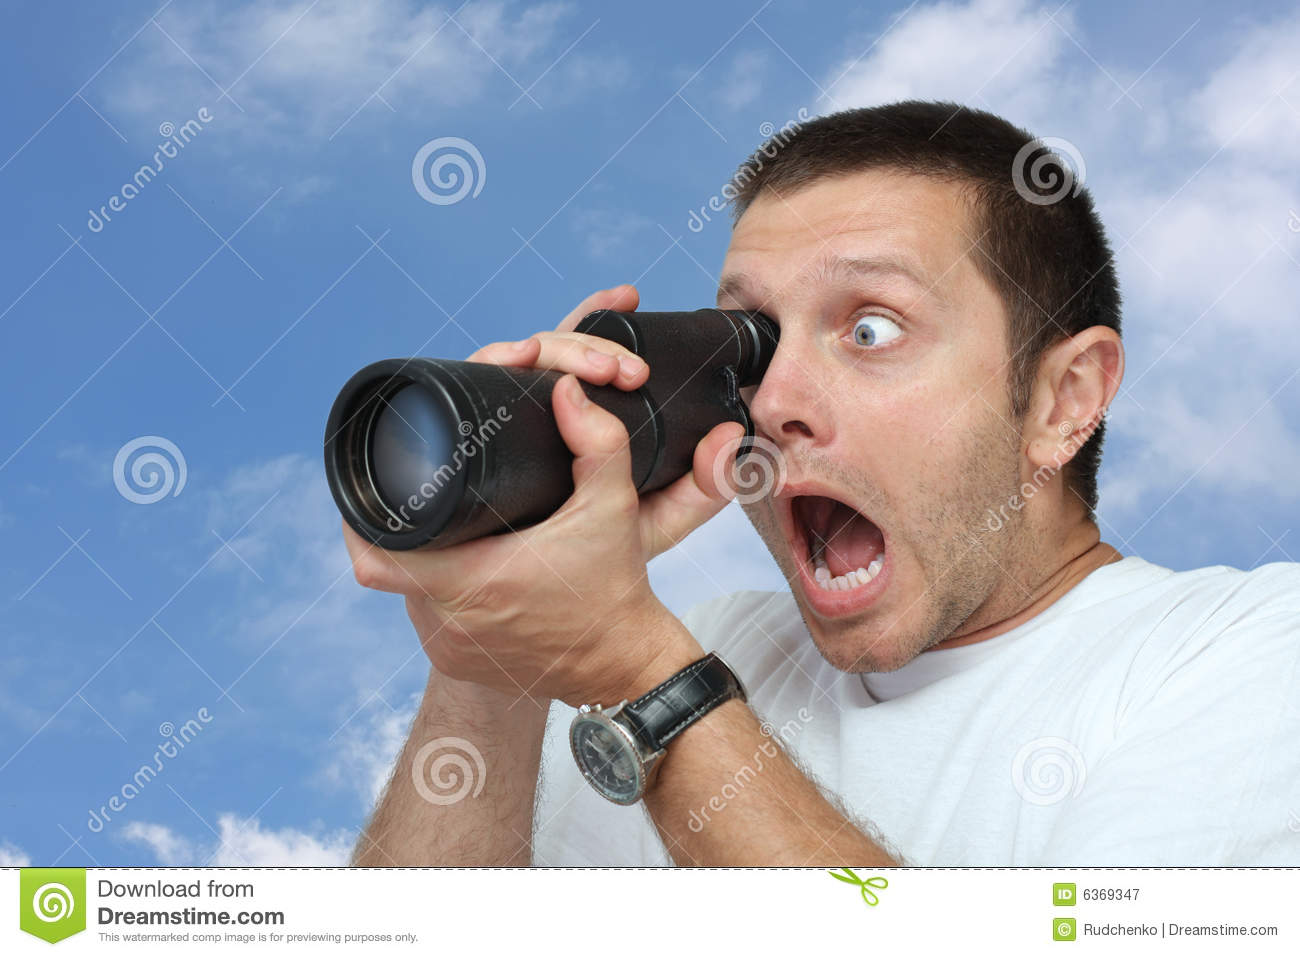 Man With Telescope Stock Image. Image Of Astonishment